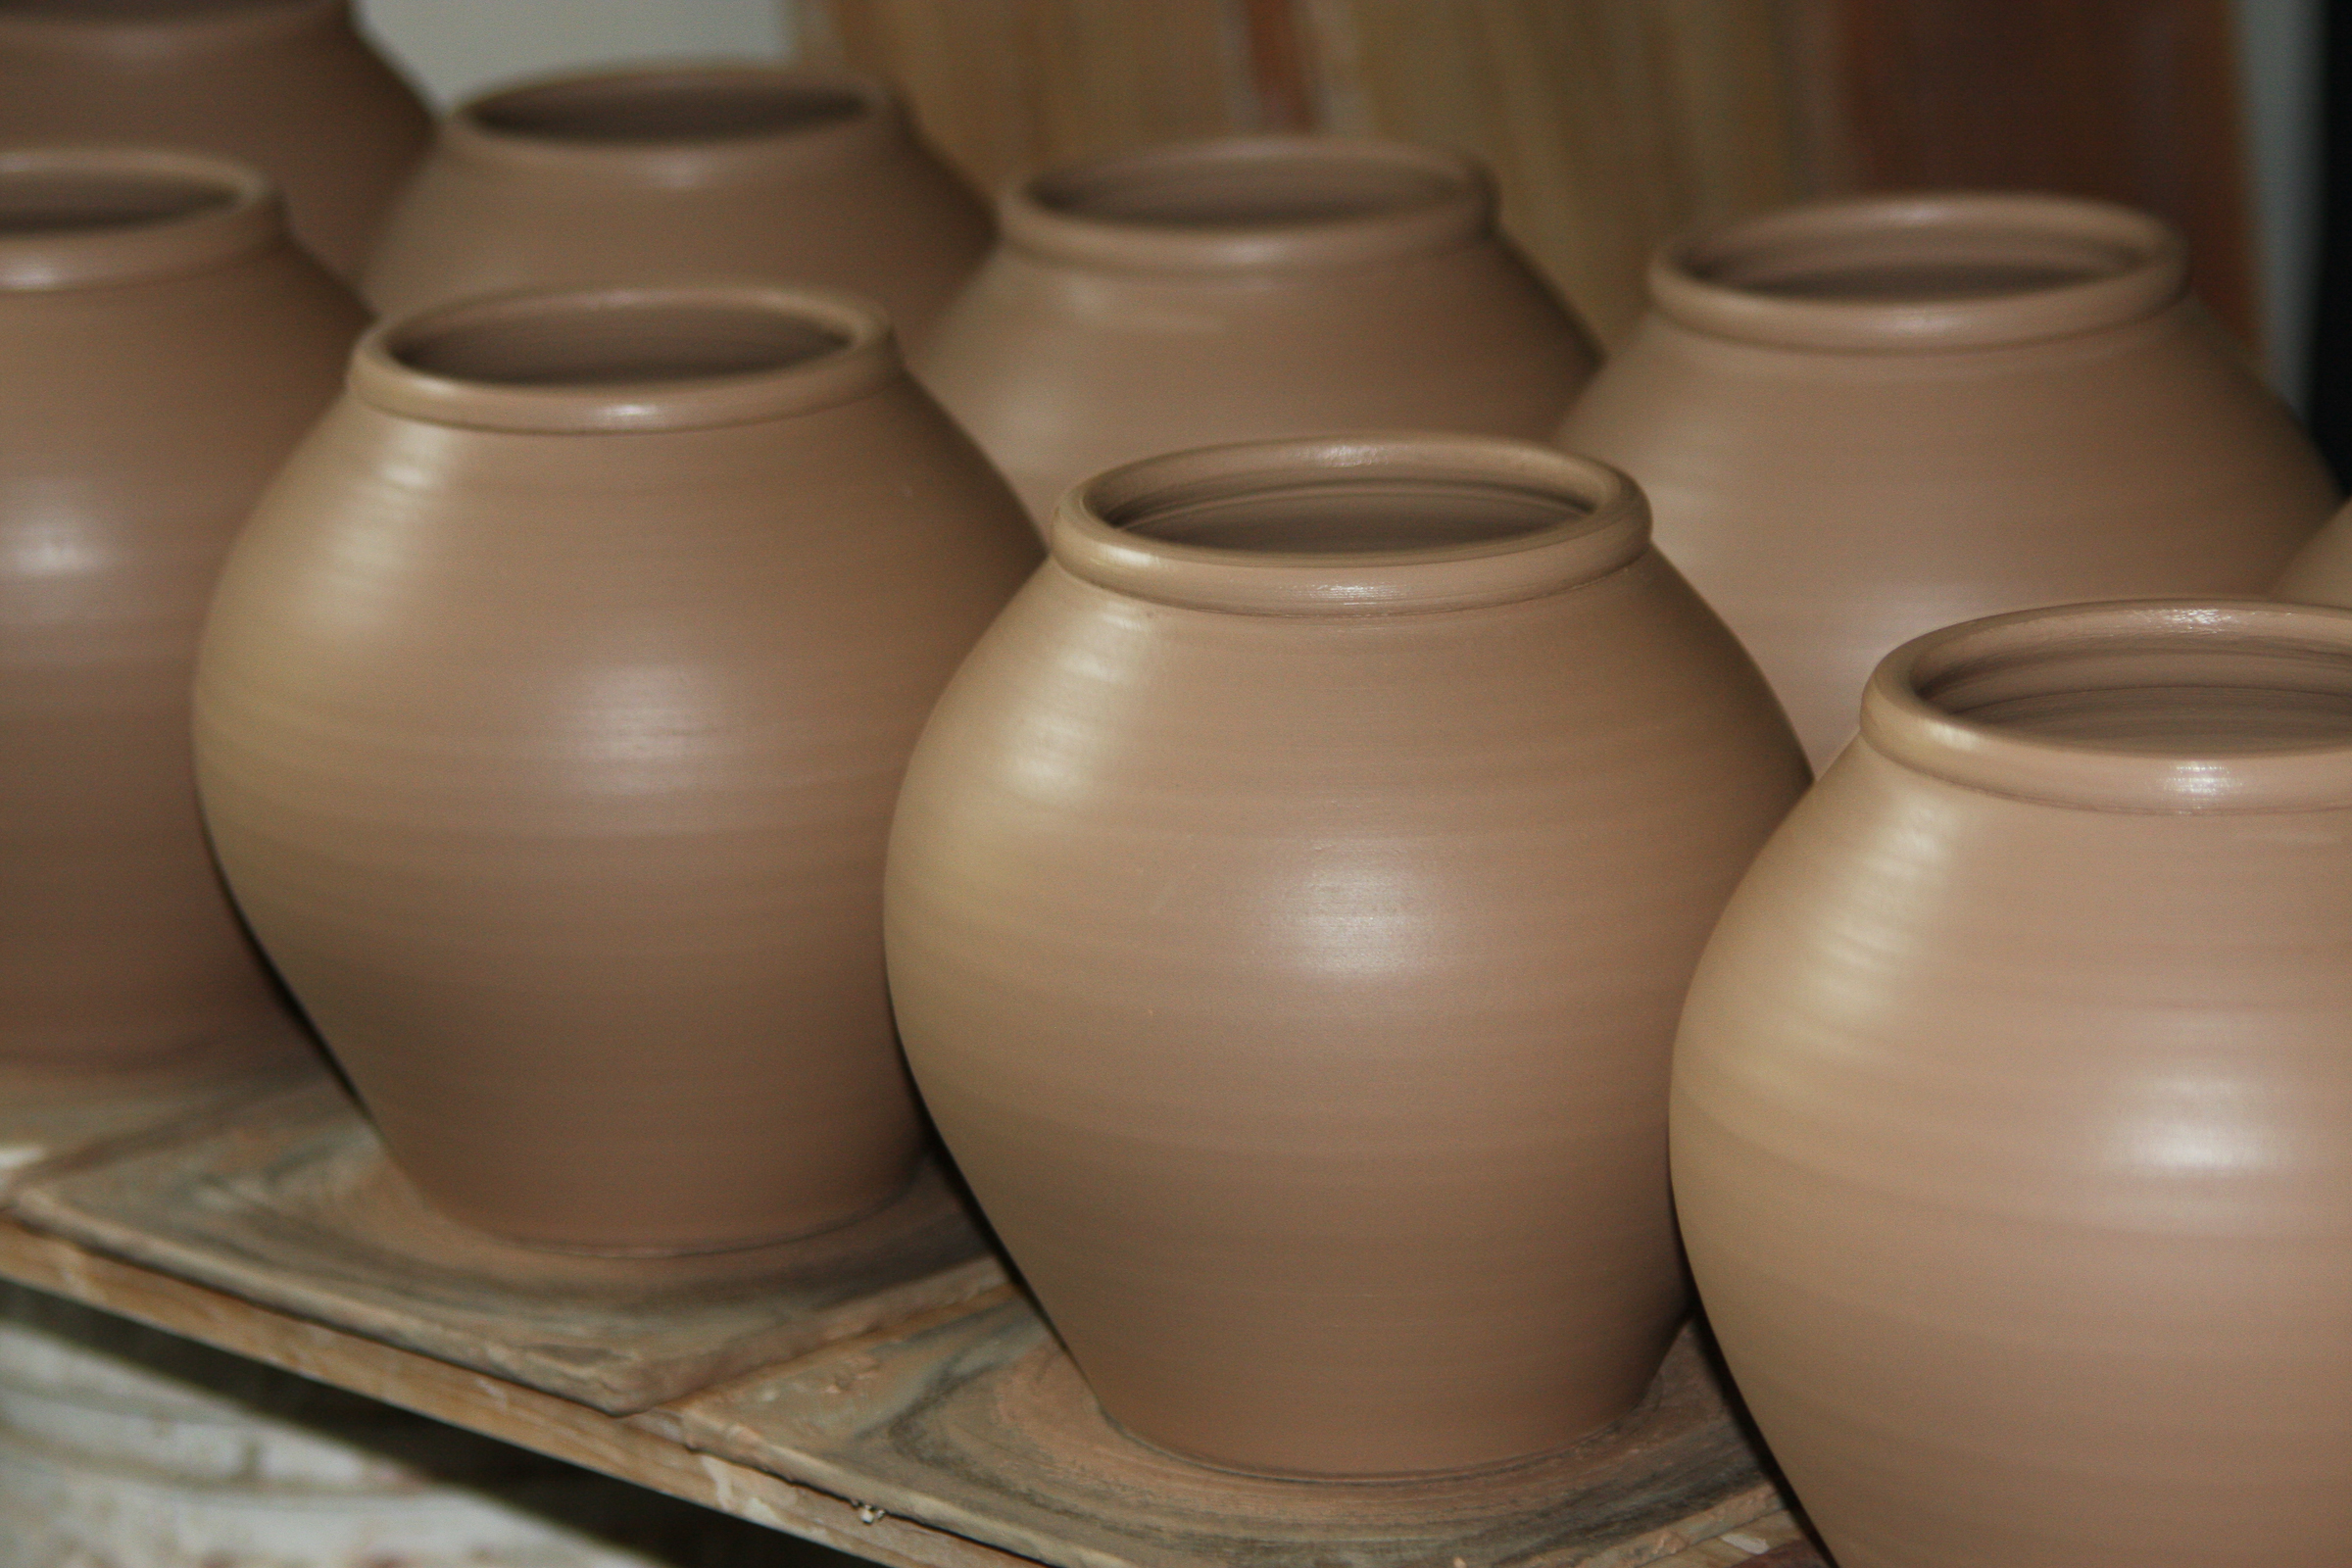 wood-fired pots